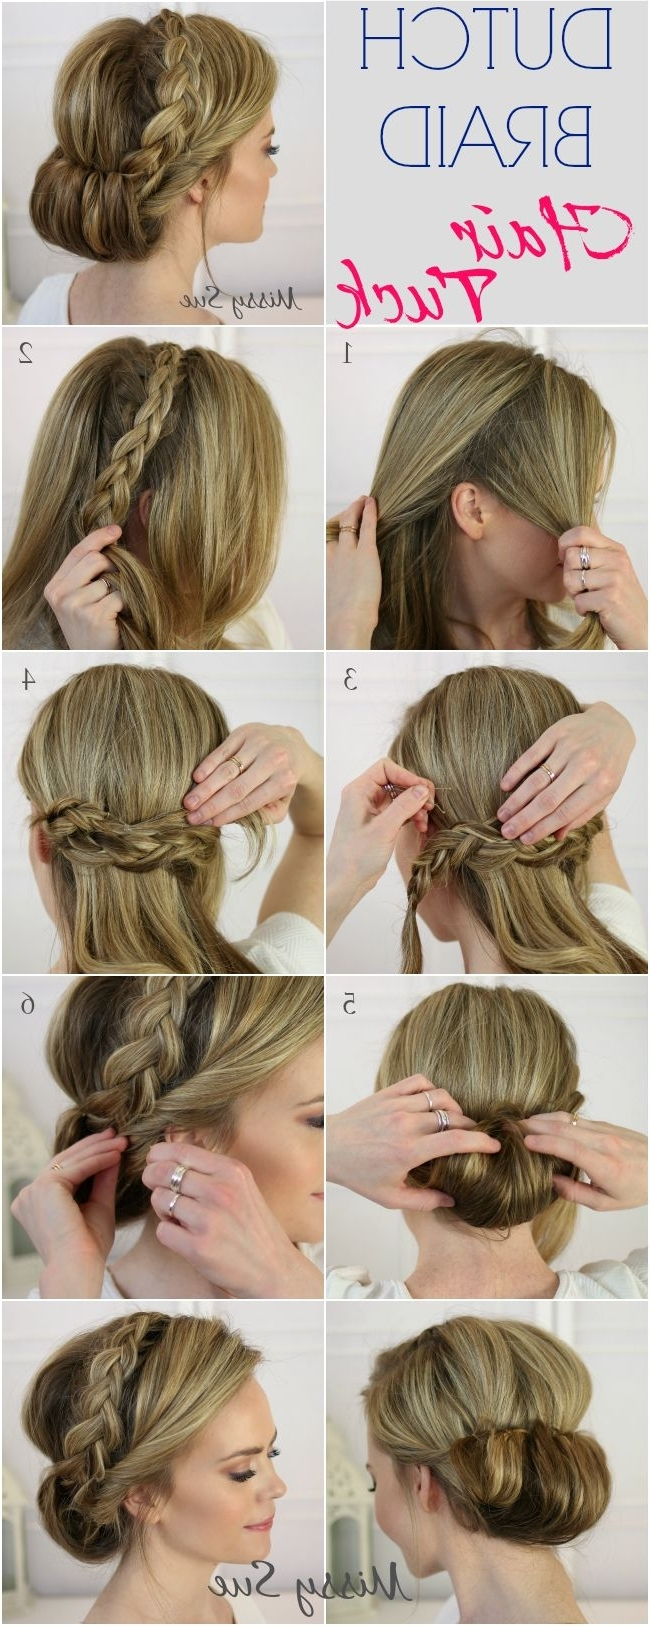 17 Stunning Dutch Braid Hairstyles With Tutorials – Pretty Designs Within Braided Crown Updo Hairstyles (View 3 of 15)